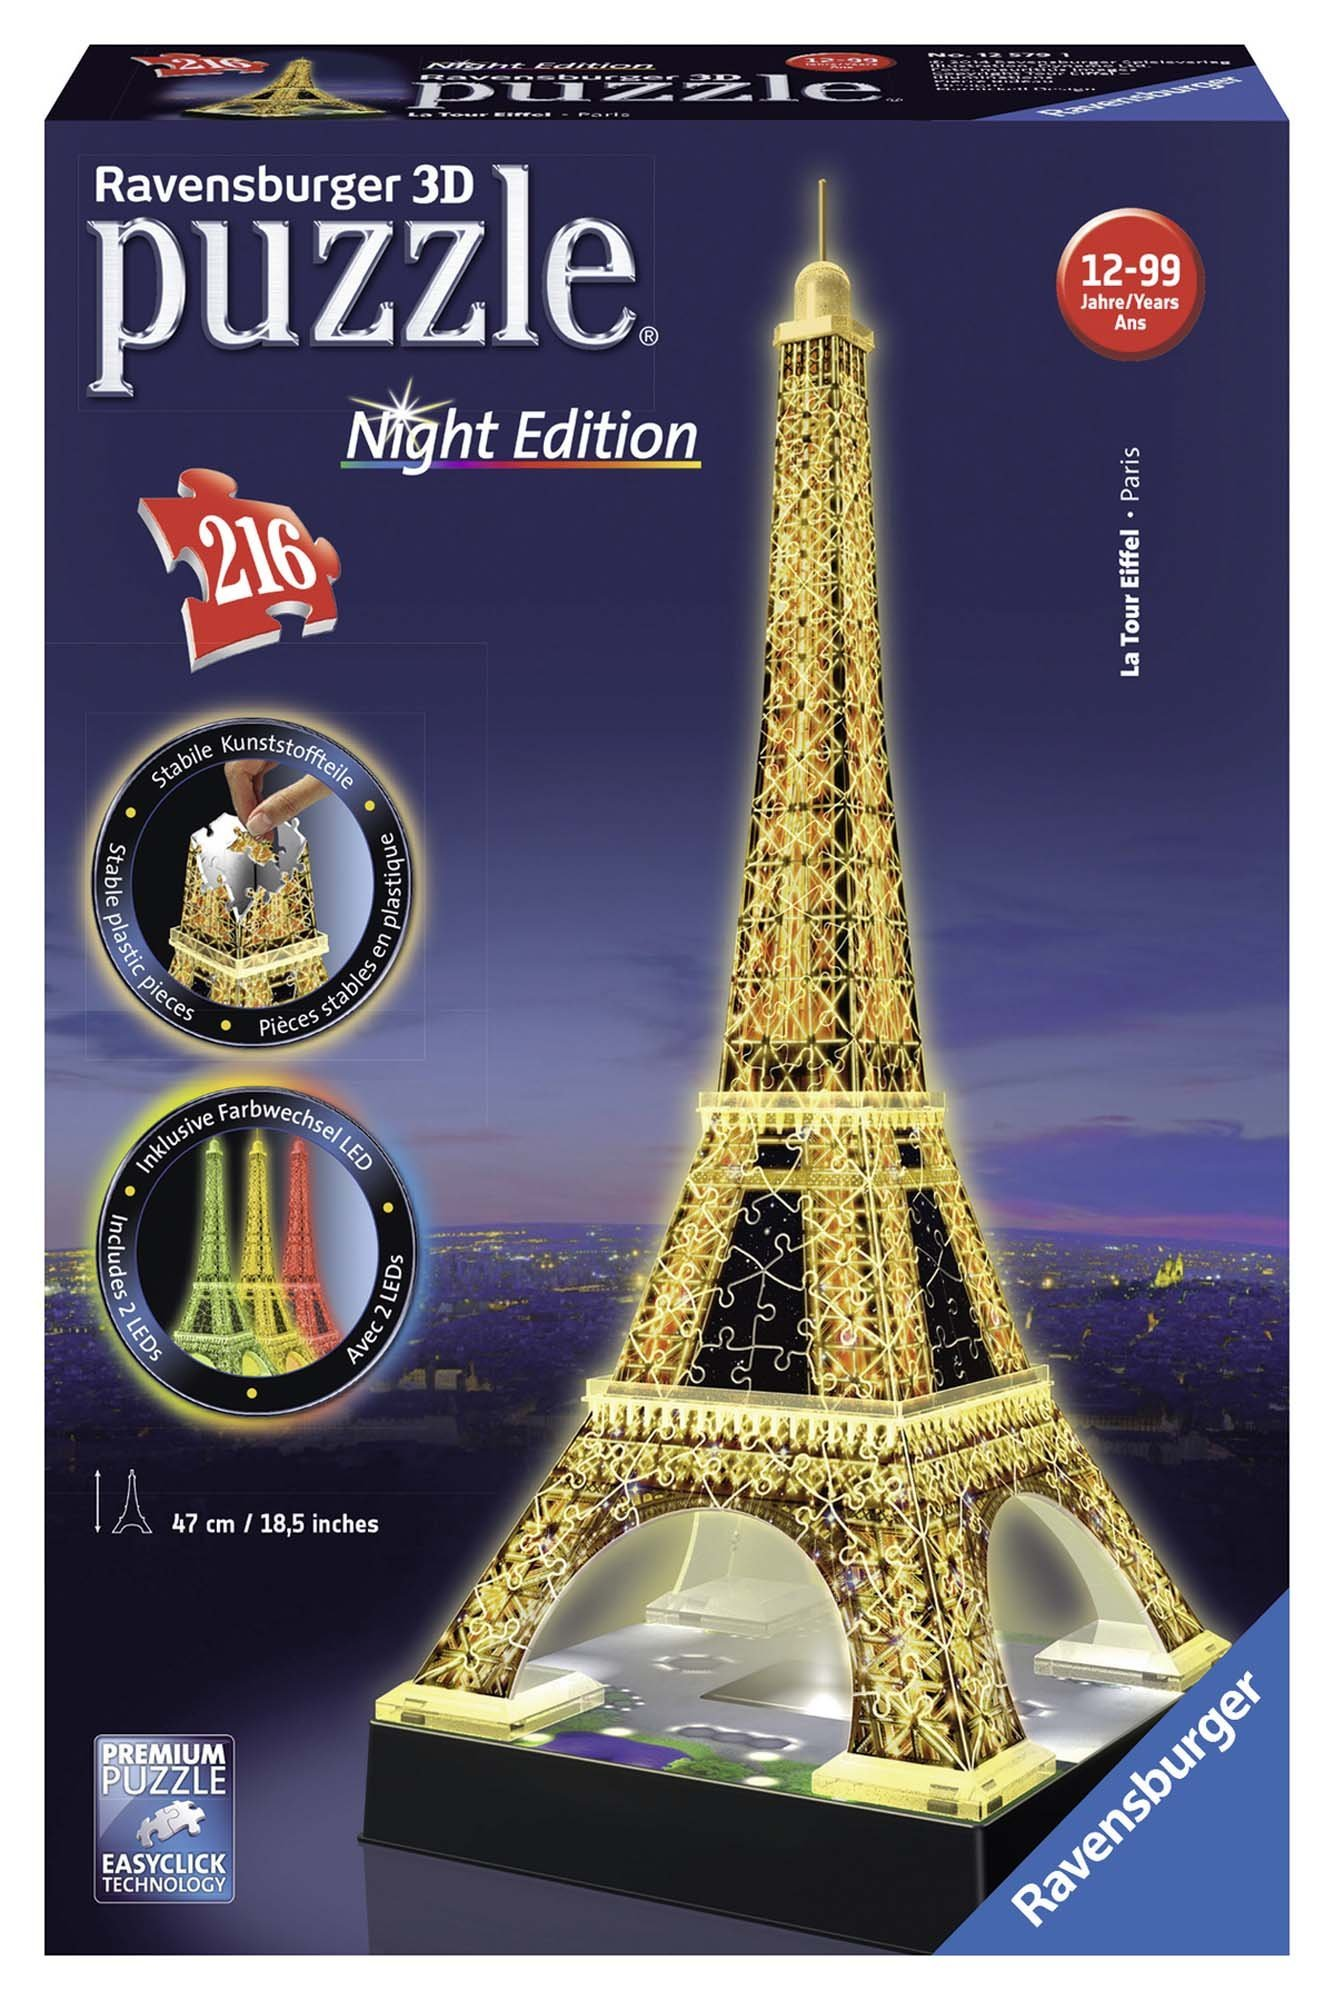 Ravensburger Eiffel Tower - Night Edition - 216 Piece 3D Jigsaw Puzzle for Kids and Adults - Easy Click Technology Means Pieces Fit Together Perfectly by Ravensburger